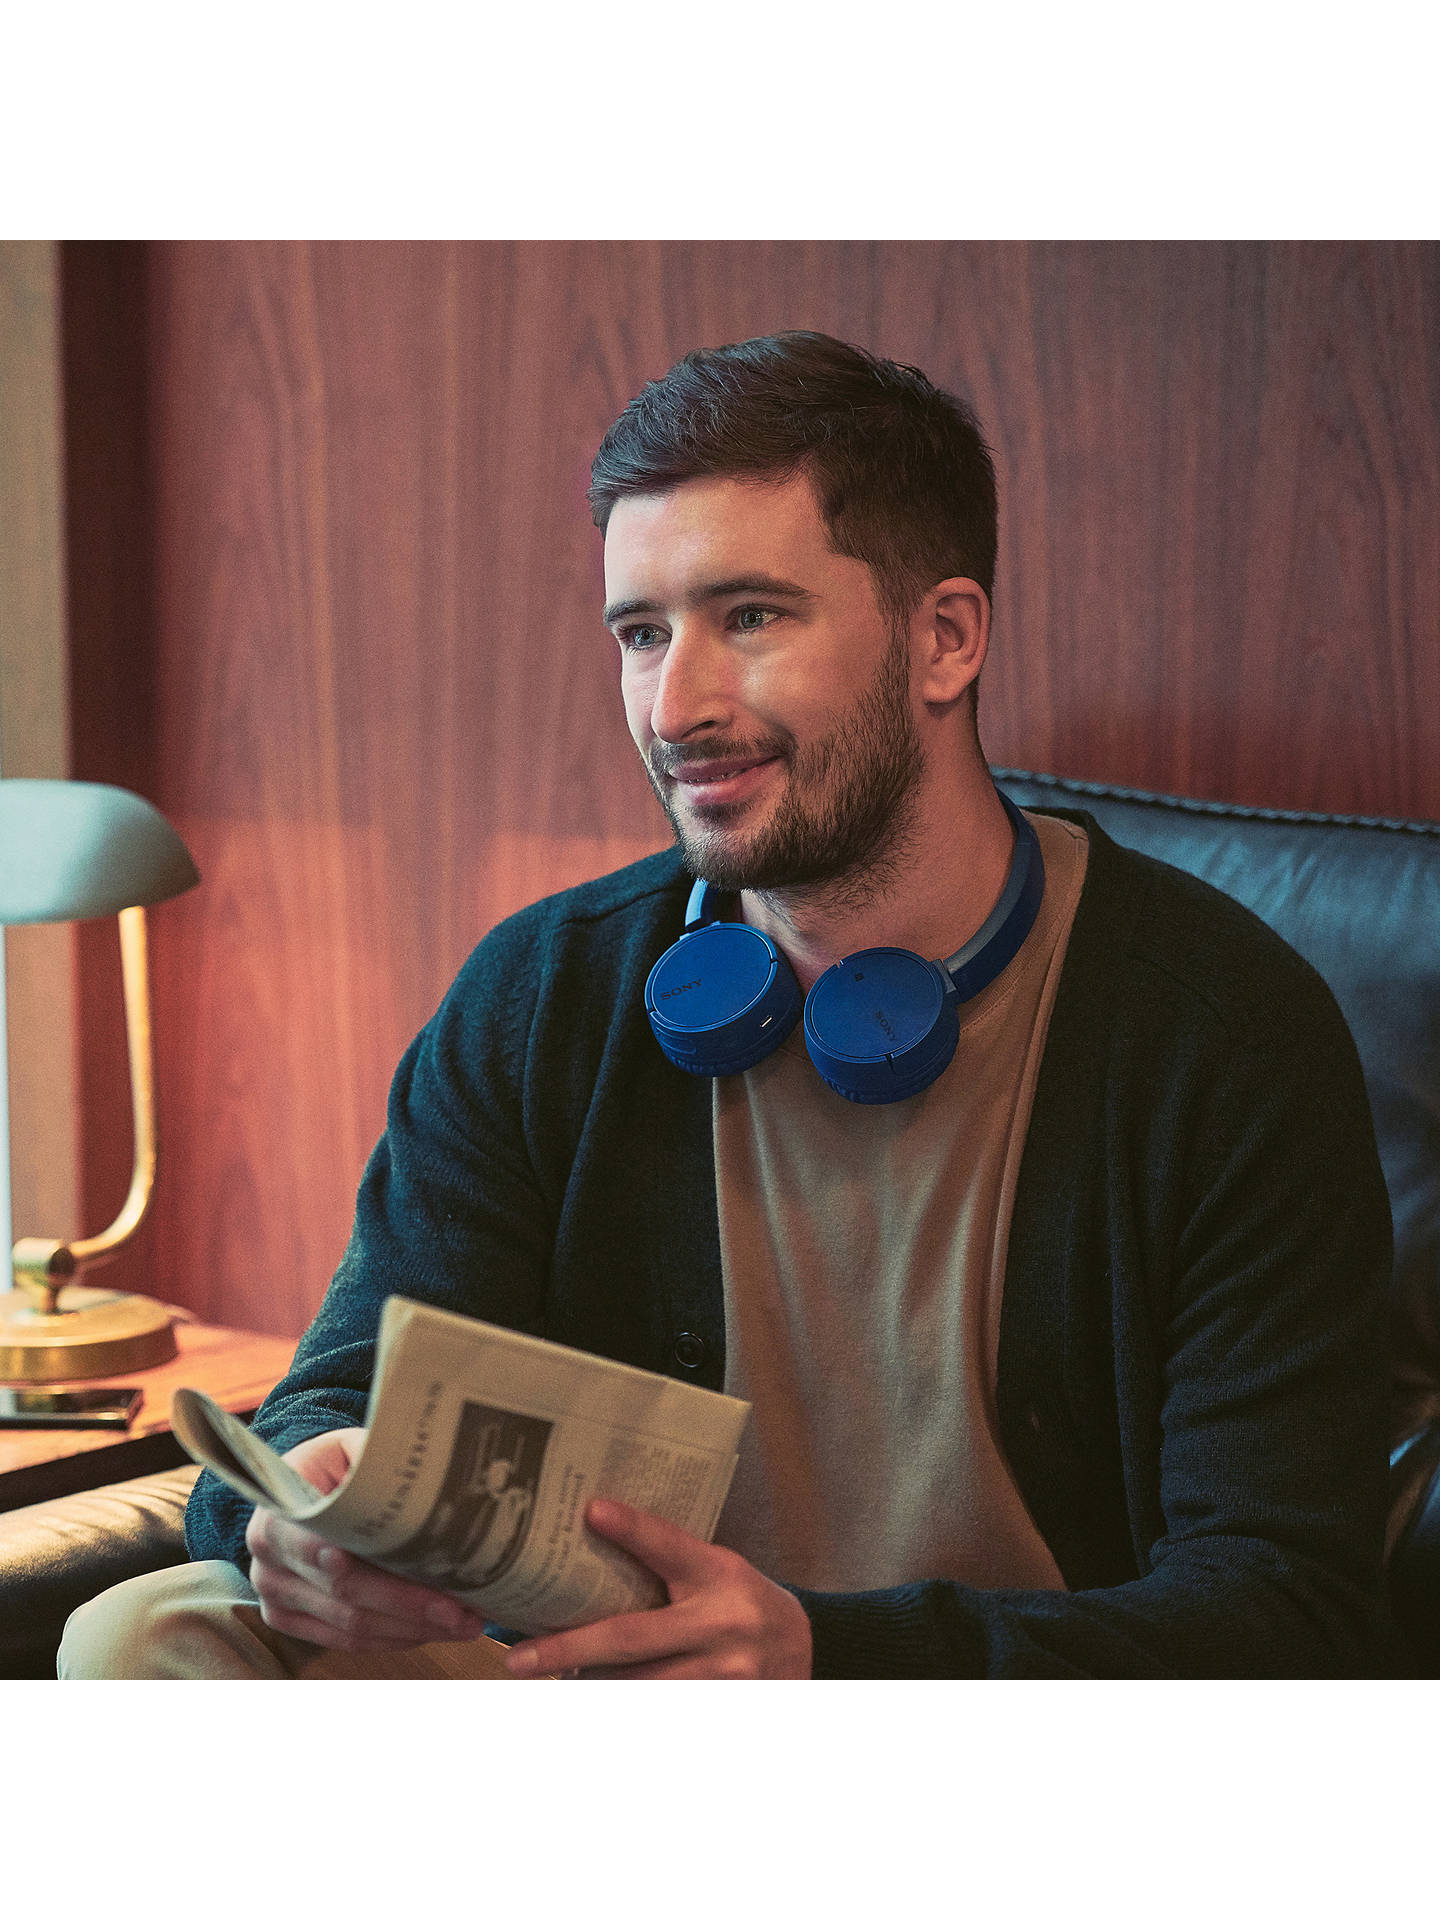 BuySony WH-CH500 Bluetooth NFC Wireless On-Ear Headphones with Mic/Remote, Blue Online at johnlewis.com